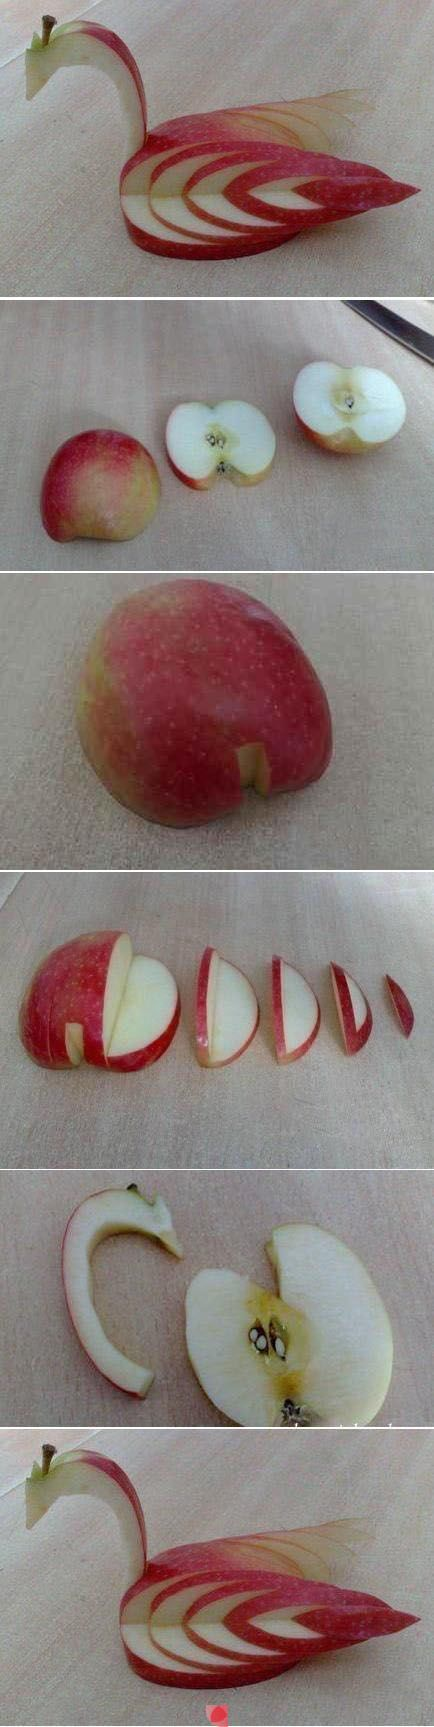 Apple food art - a Bird                                                                                                                                                                                 More